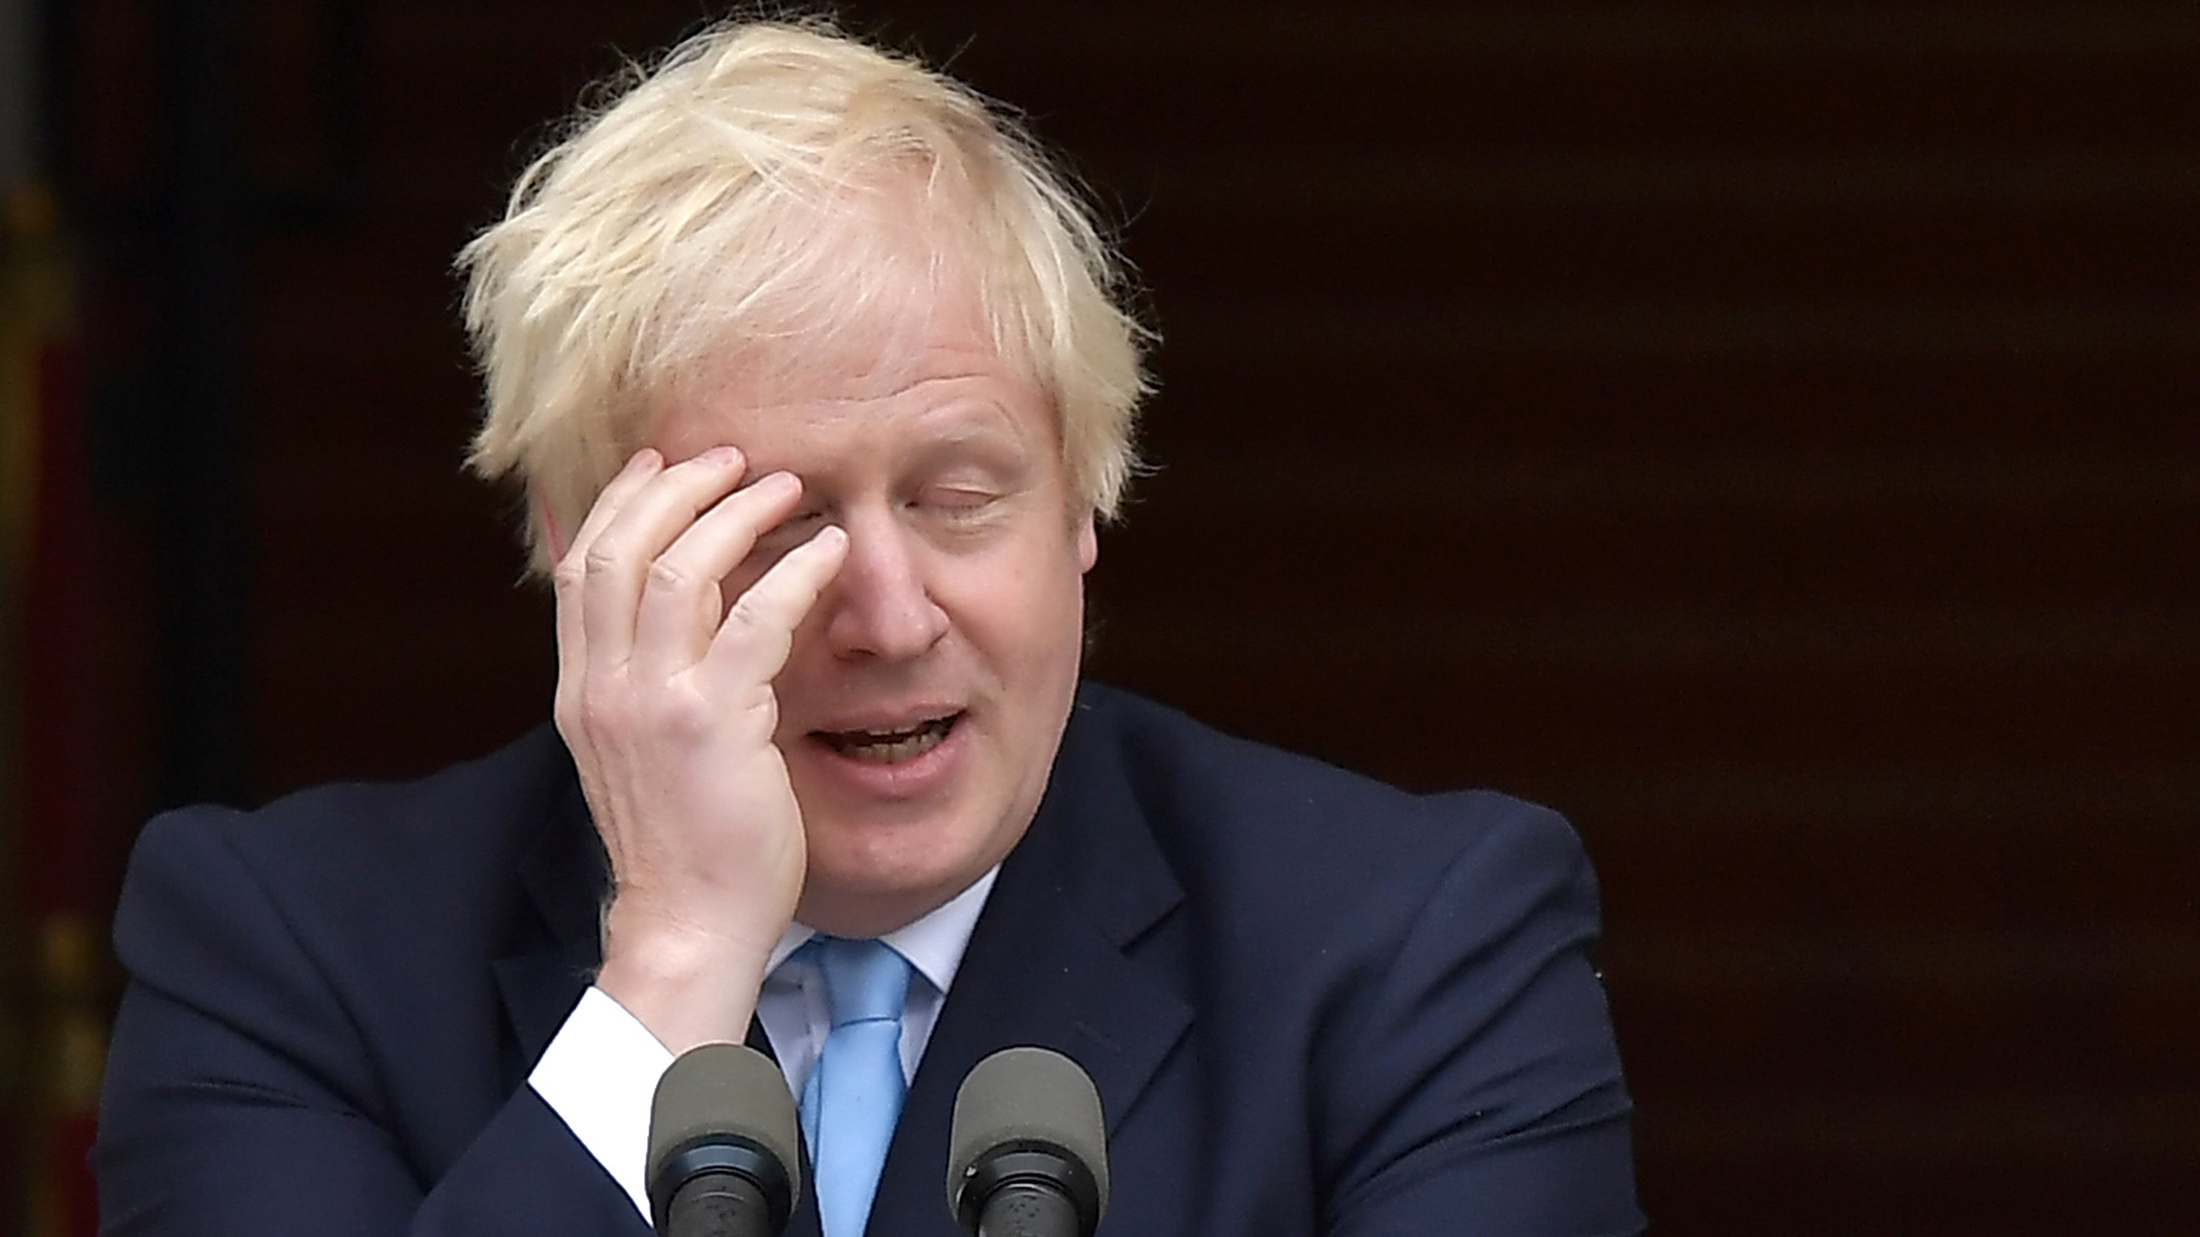 Boris Johnson to suspend parliament in Brexit run-up